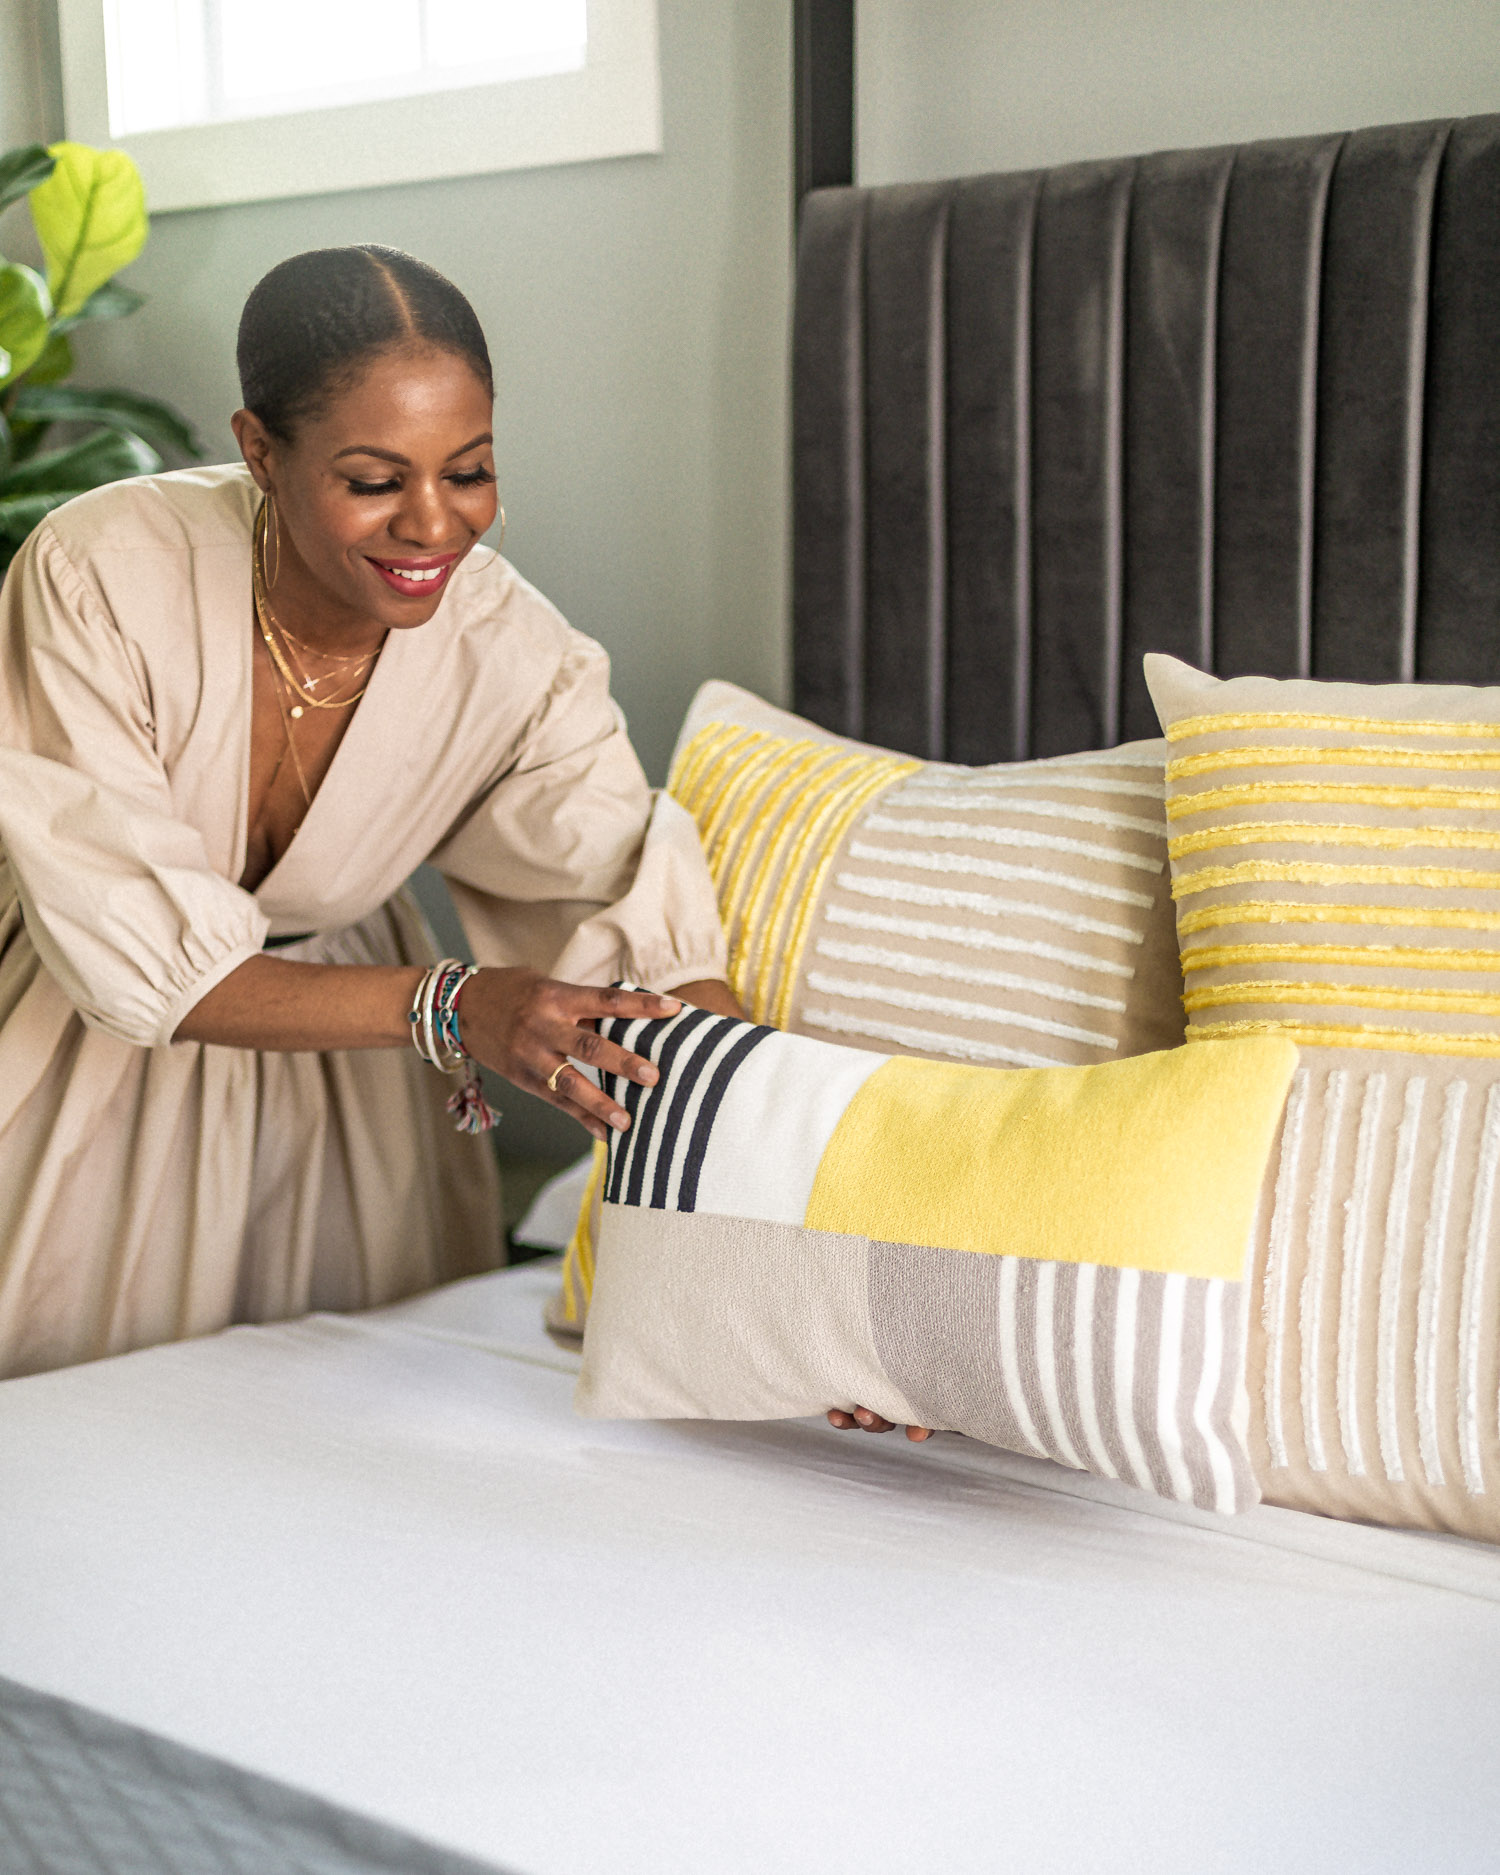 atlanta fashion blogger shows you how to give your bedroom a spring refresh, how to get your bedroom ready for spring, spring bedroom decor, how to update your rooms for spring, bedroom update, west elm, decorative pillows, how to give your room a spring refresh, summer decor ideas